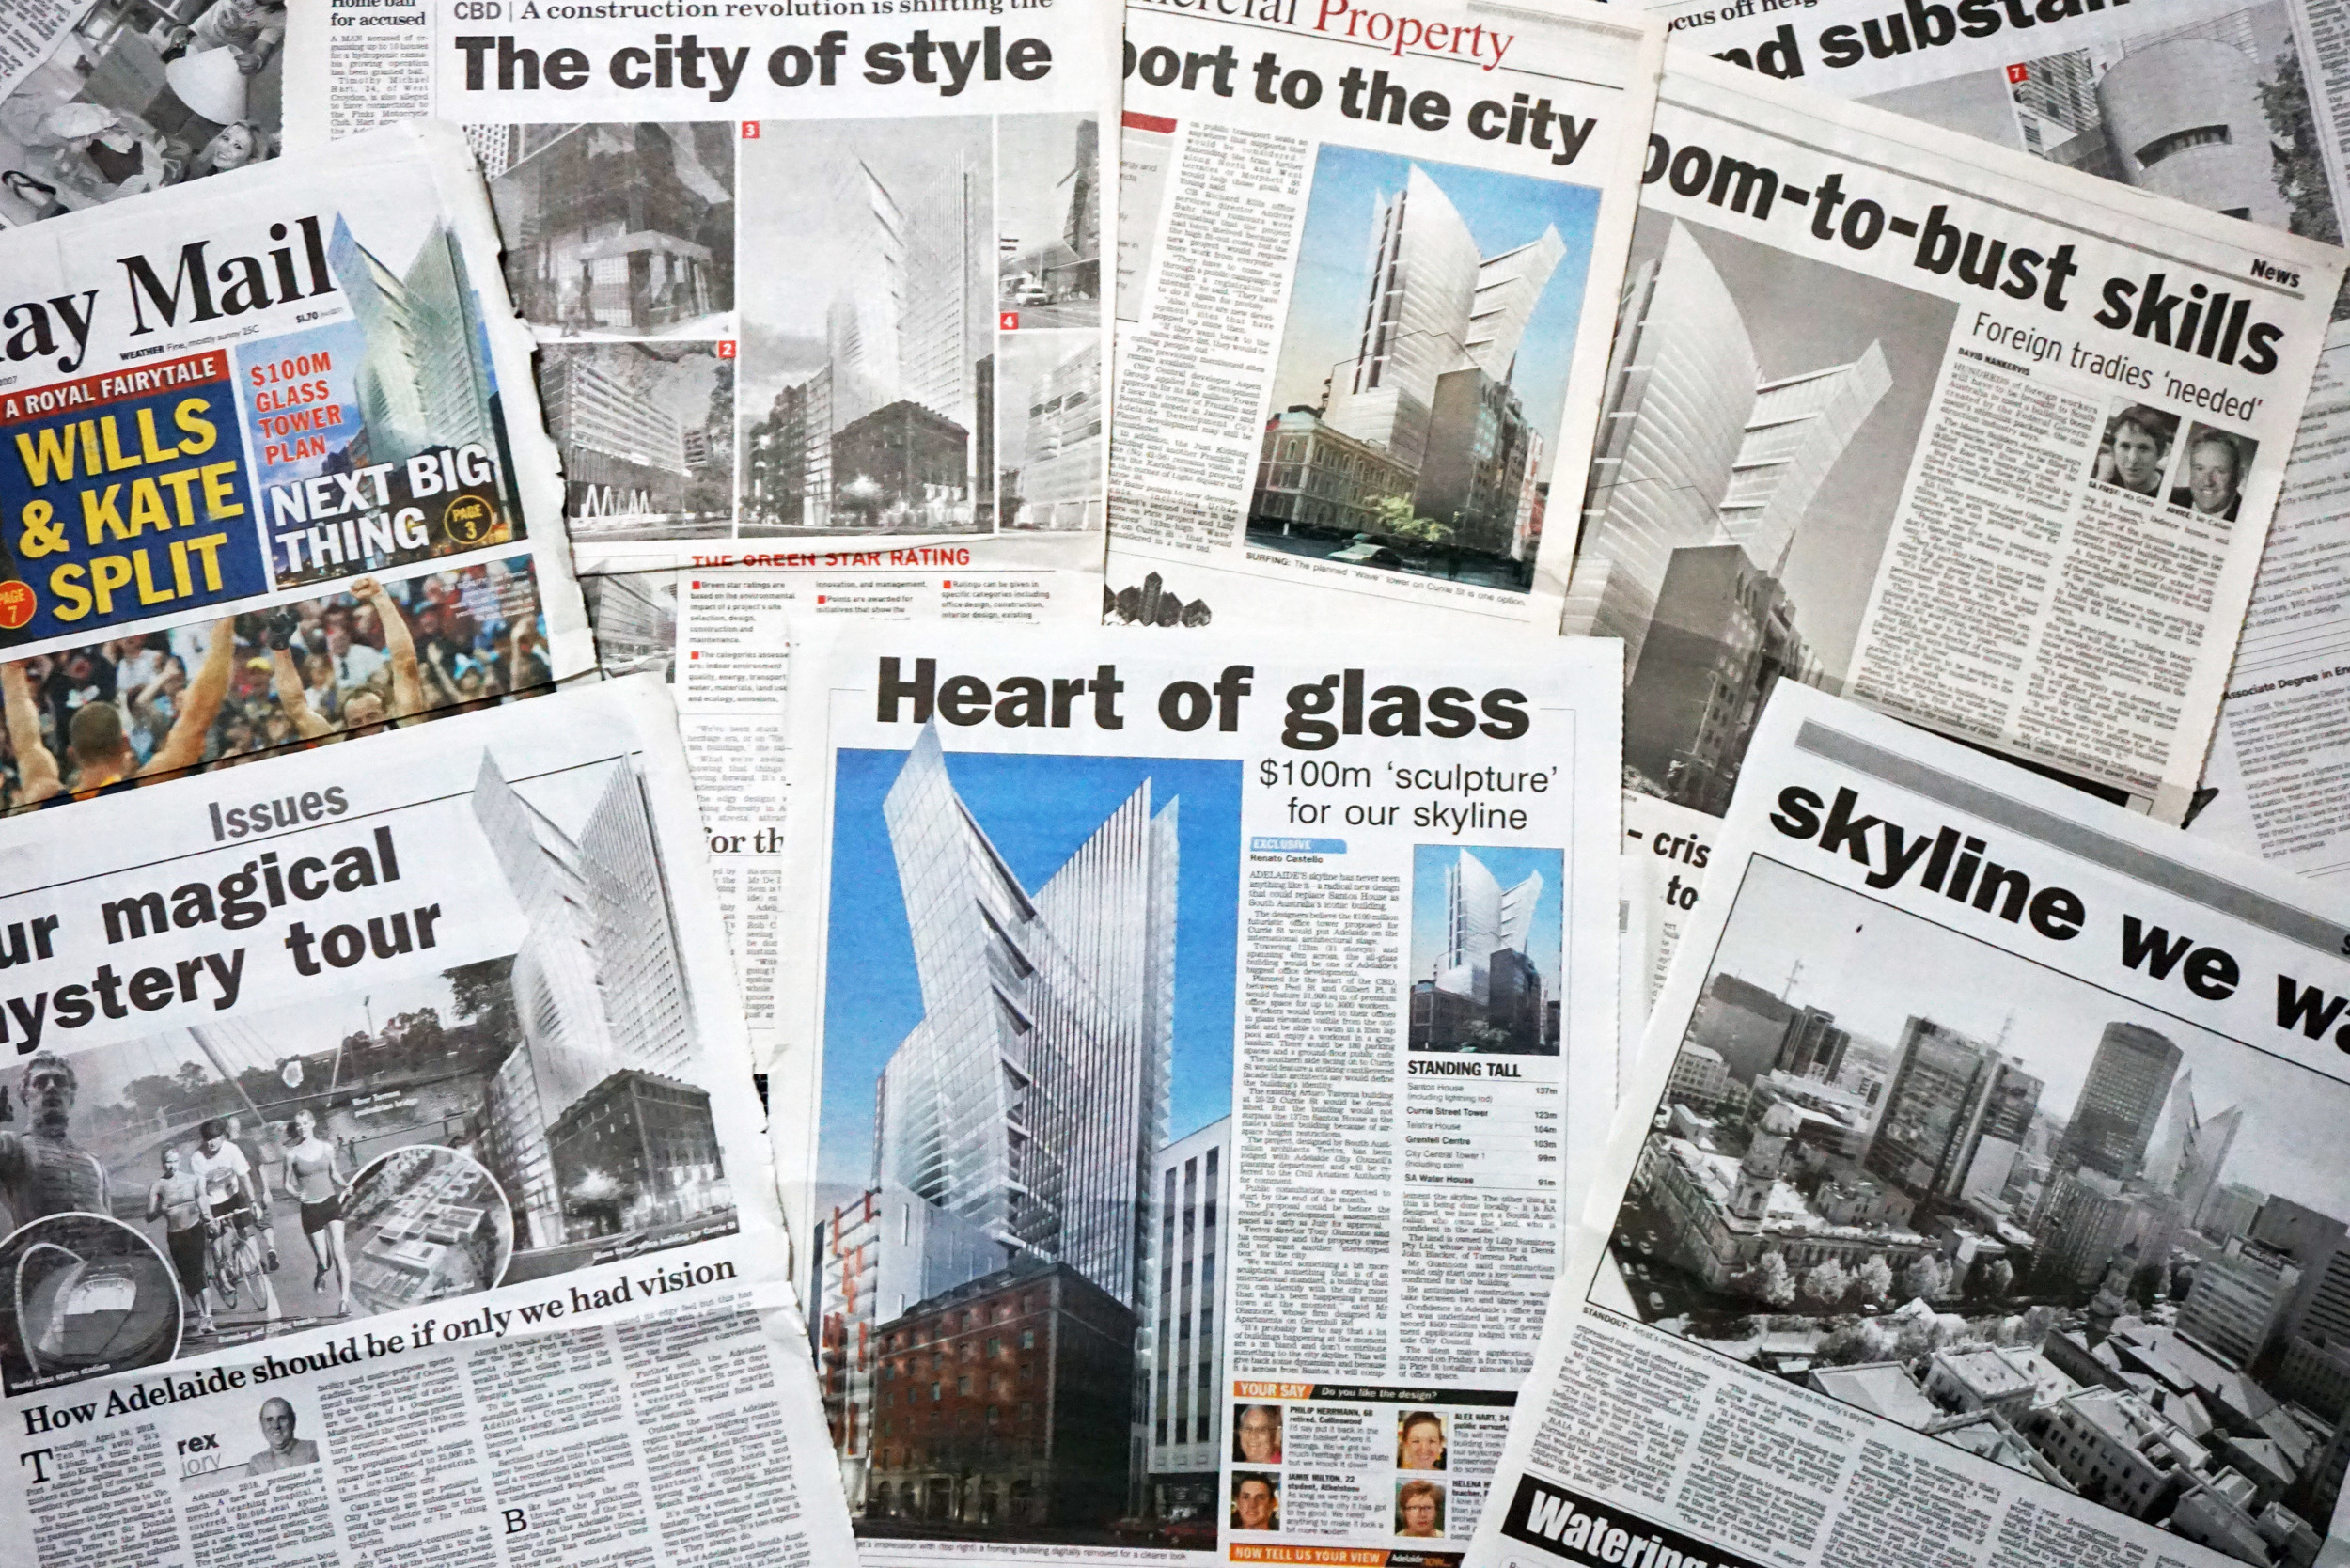 The skyscraper was a big hit with the media and with locals, continuingto be so to this day